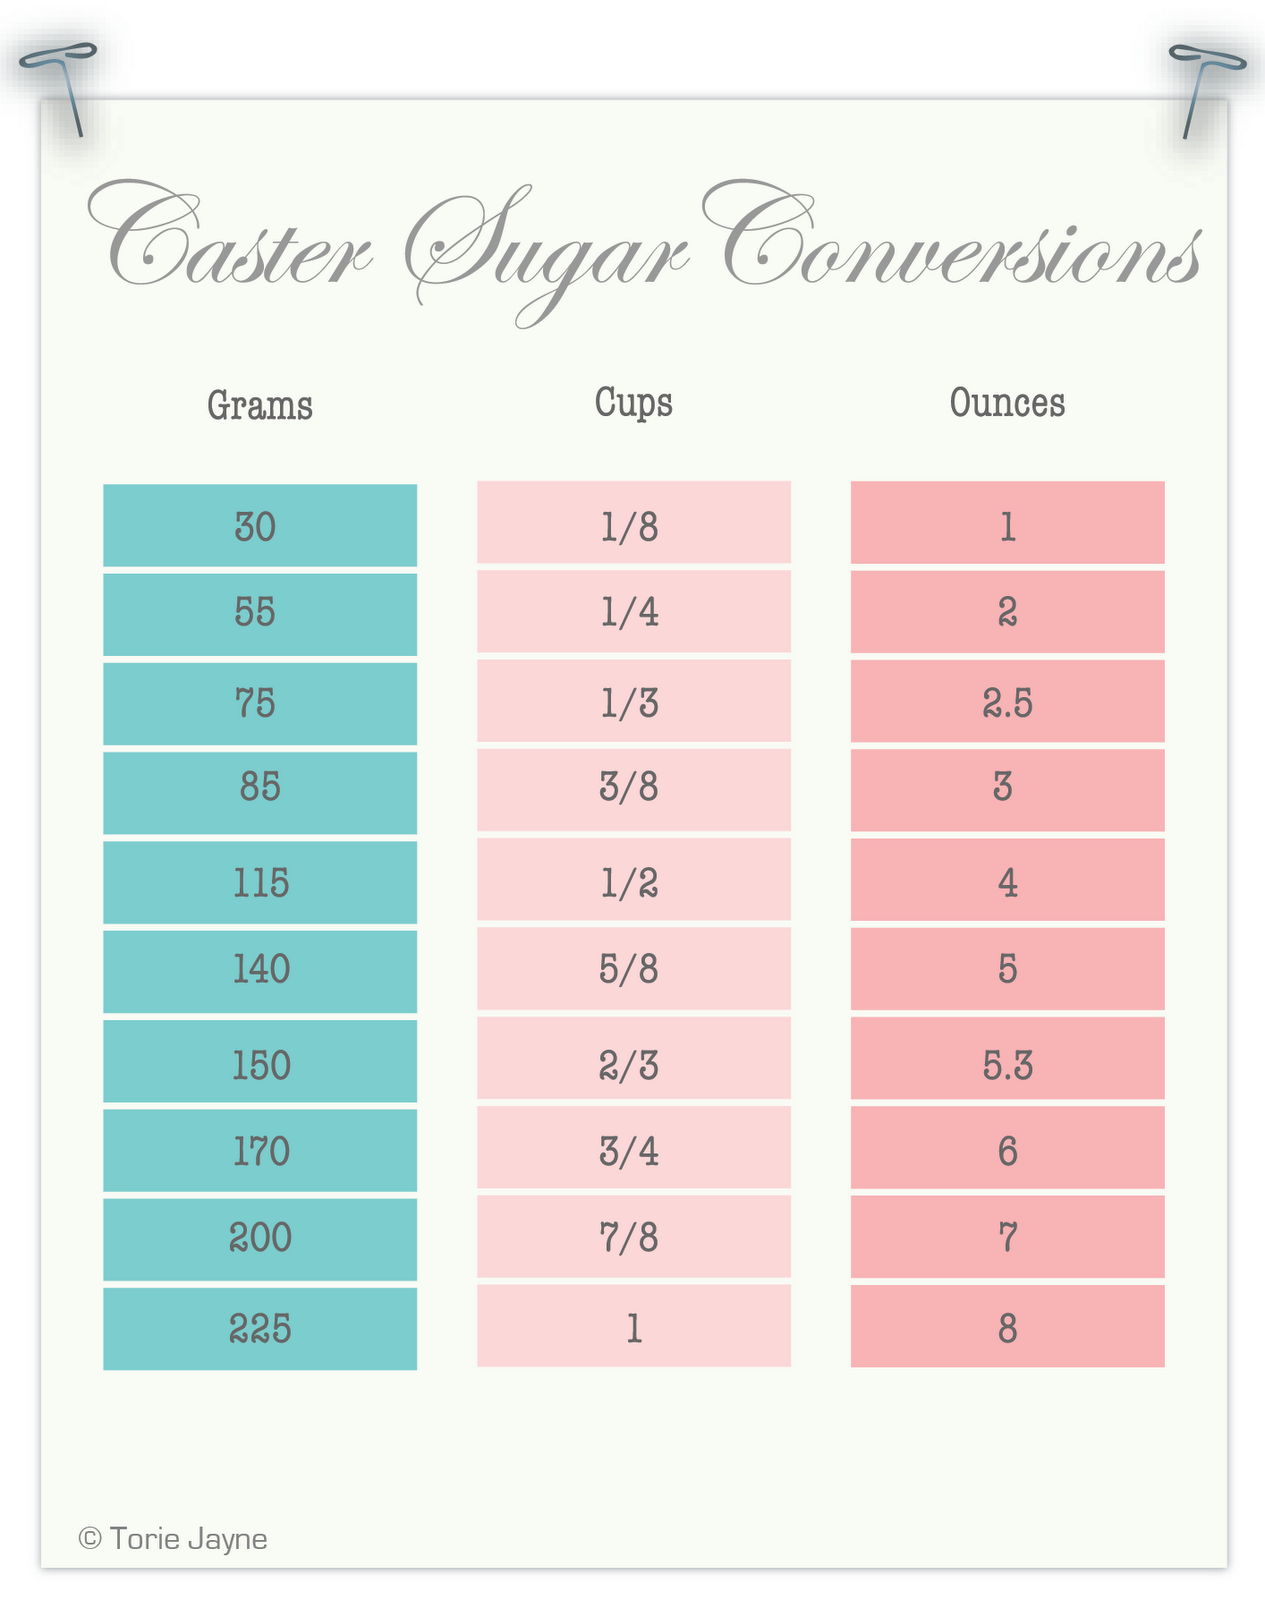 Caster sugar conversion chart superfine or baking sugar in us caster sugar conversion chart superfine or baking sugar in us nvjuhfo Choice Image